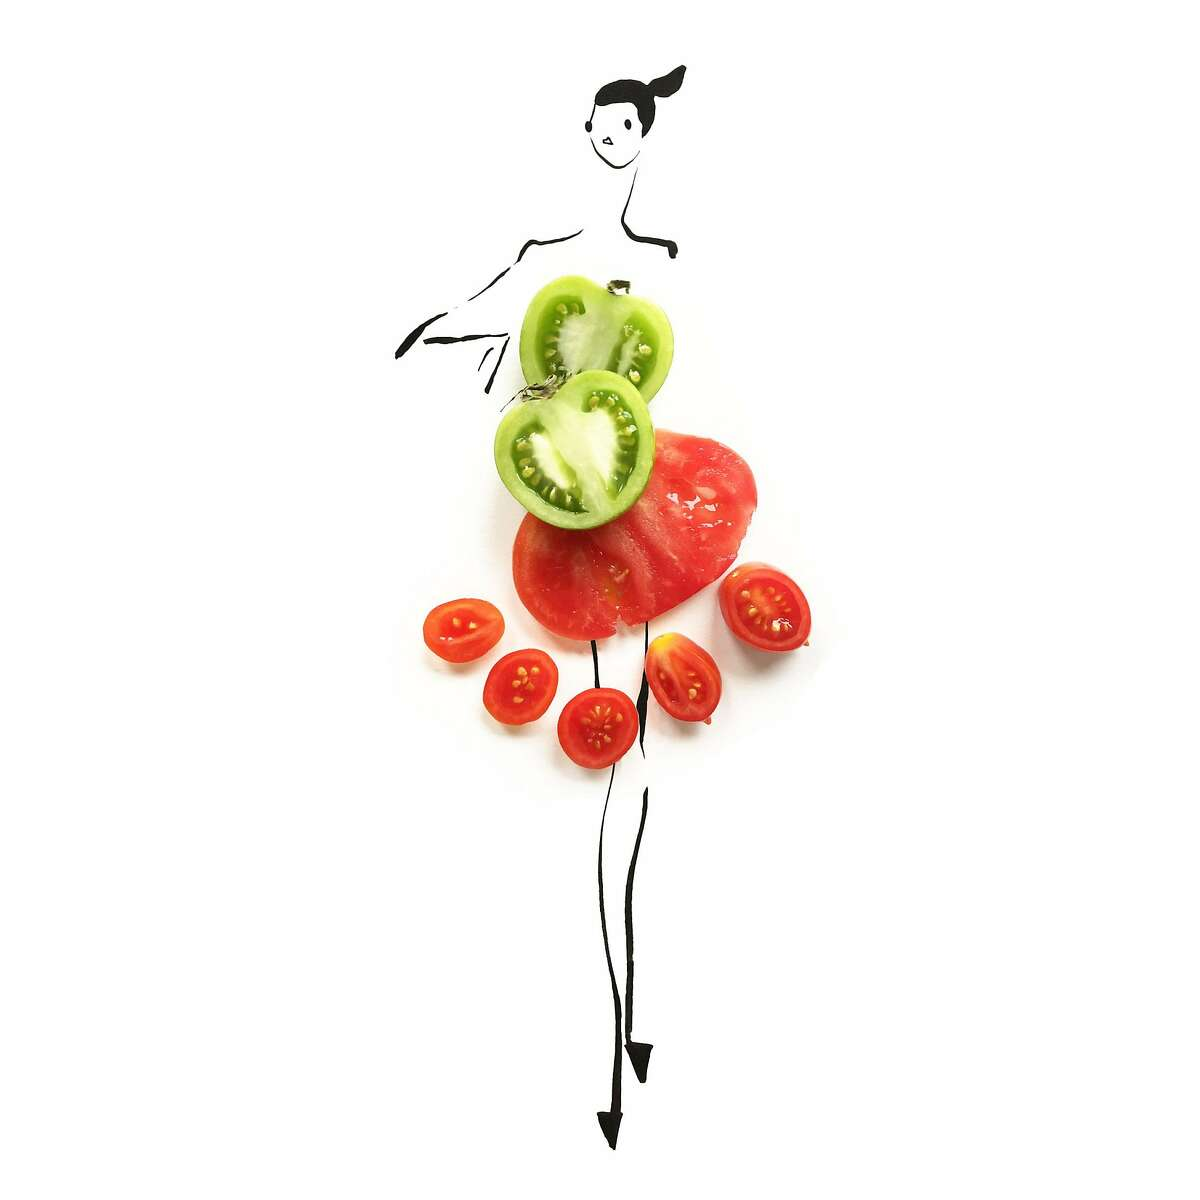 Fashion school graduate Gretchen Roehrs, who gave up offers in New York to move to San Francisco to be part of the Silicon Valley scene, began doodling with fruits and vegetables to unleash pent up creative urges, and posted them on Instagram, which led to a healthy following -- and some fashion illustration gigs with Marc Jacobs beauty, Bon Appetit magazine and other companies.